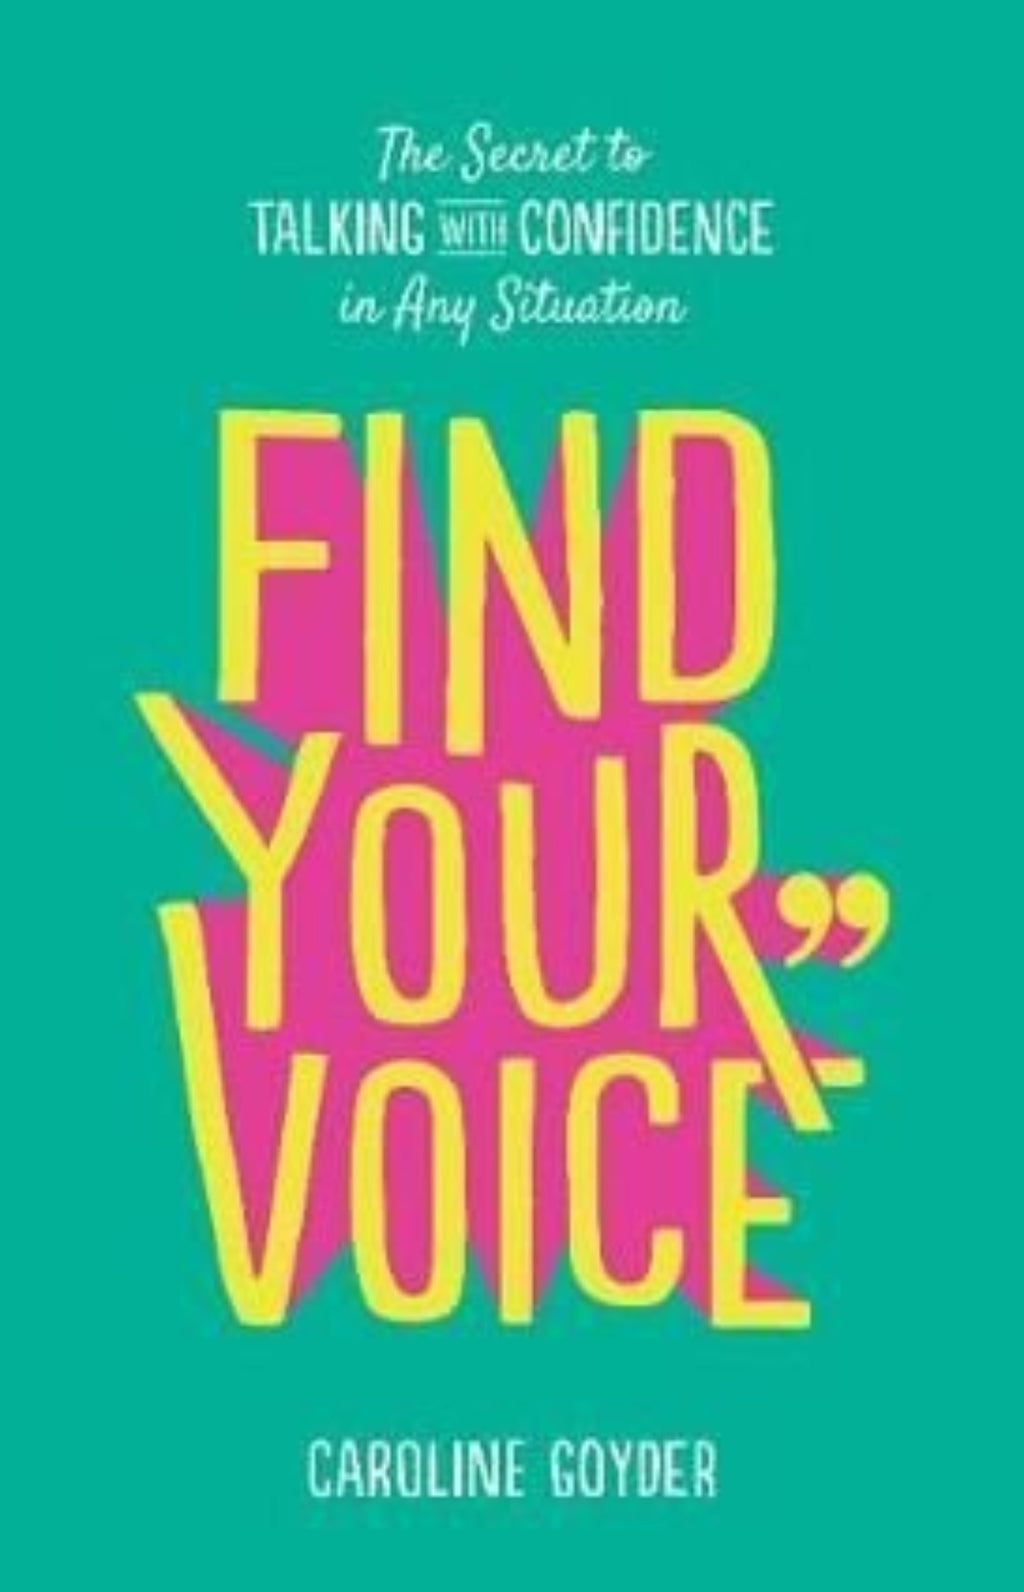 Find Your Voice : The Secret to Talking with Confidence in Any Situation